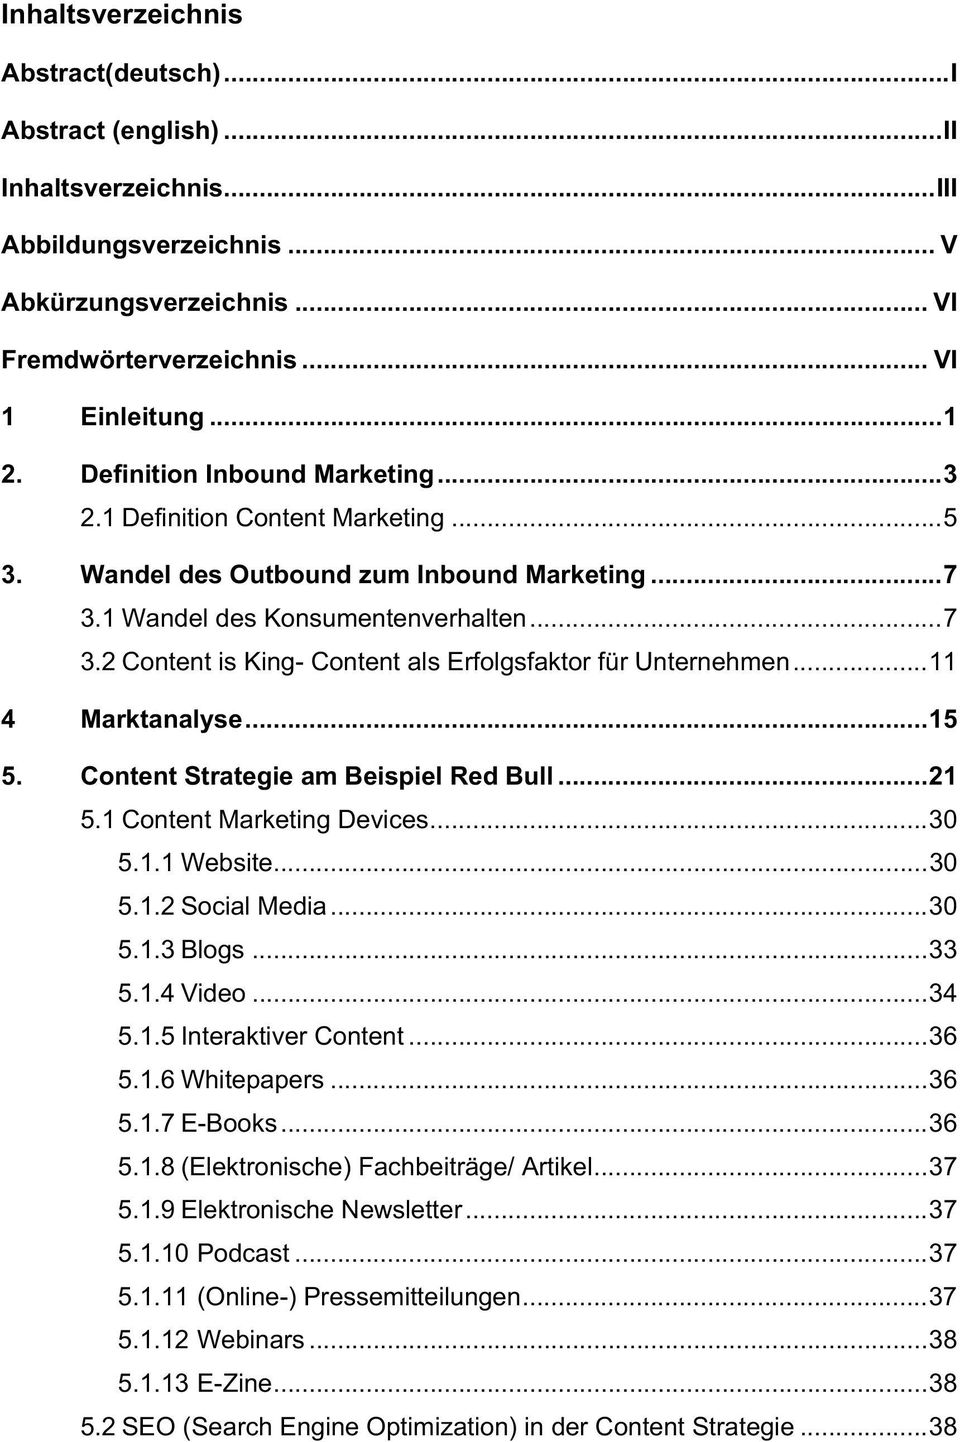 .. 11 4 Marktanalyse... 15 5. Content Strategie am Beispiel Red Bull... 21 5.1 Content Marketing Devices... 30 5.1.1 Website... 30 5.1.2 Social Media... 30 5.1.3 Blogs... 33 5.1.4 Video... 34 5.1.5 Interaktiver Content.